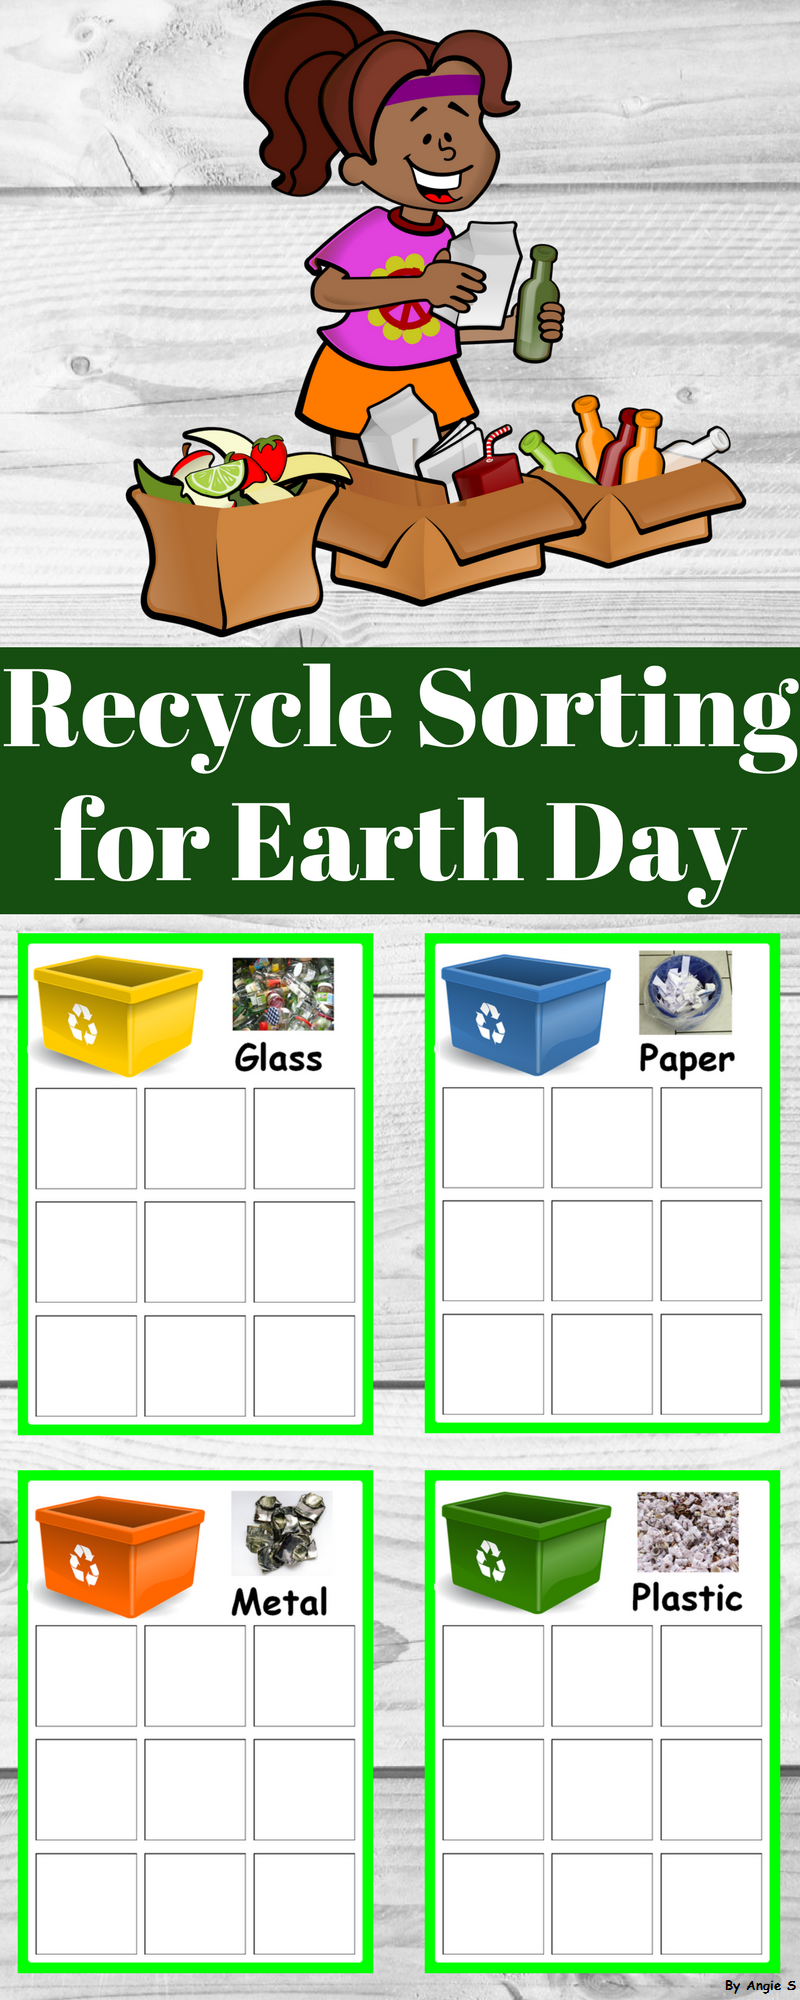 Earth Day Activity for Autism - Recycle Sorting | Special education ...